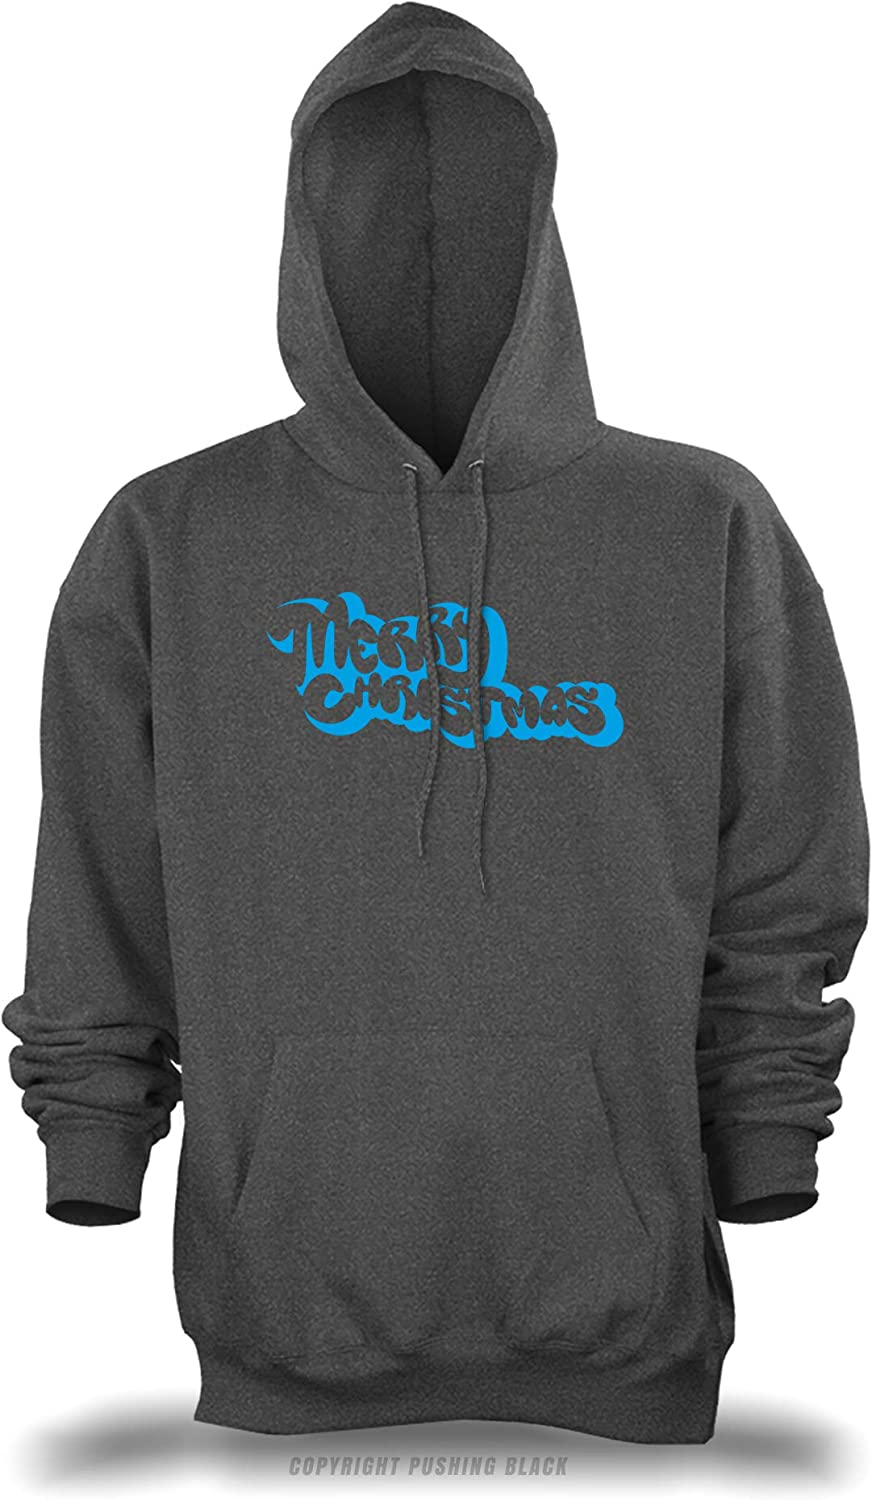 PUSHING BLACK Merry Christmas Bubble Style Unisex Pullover Hoodie